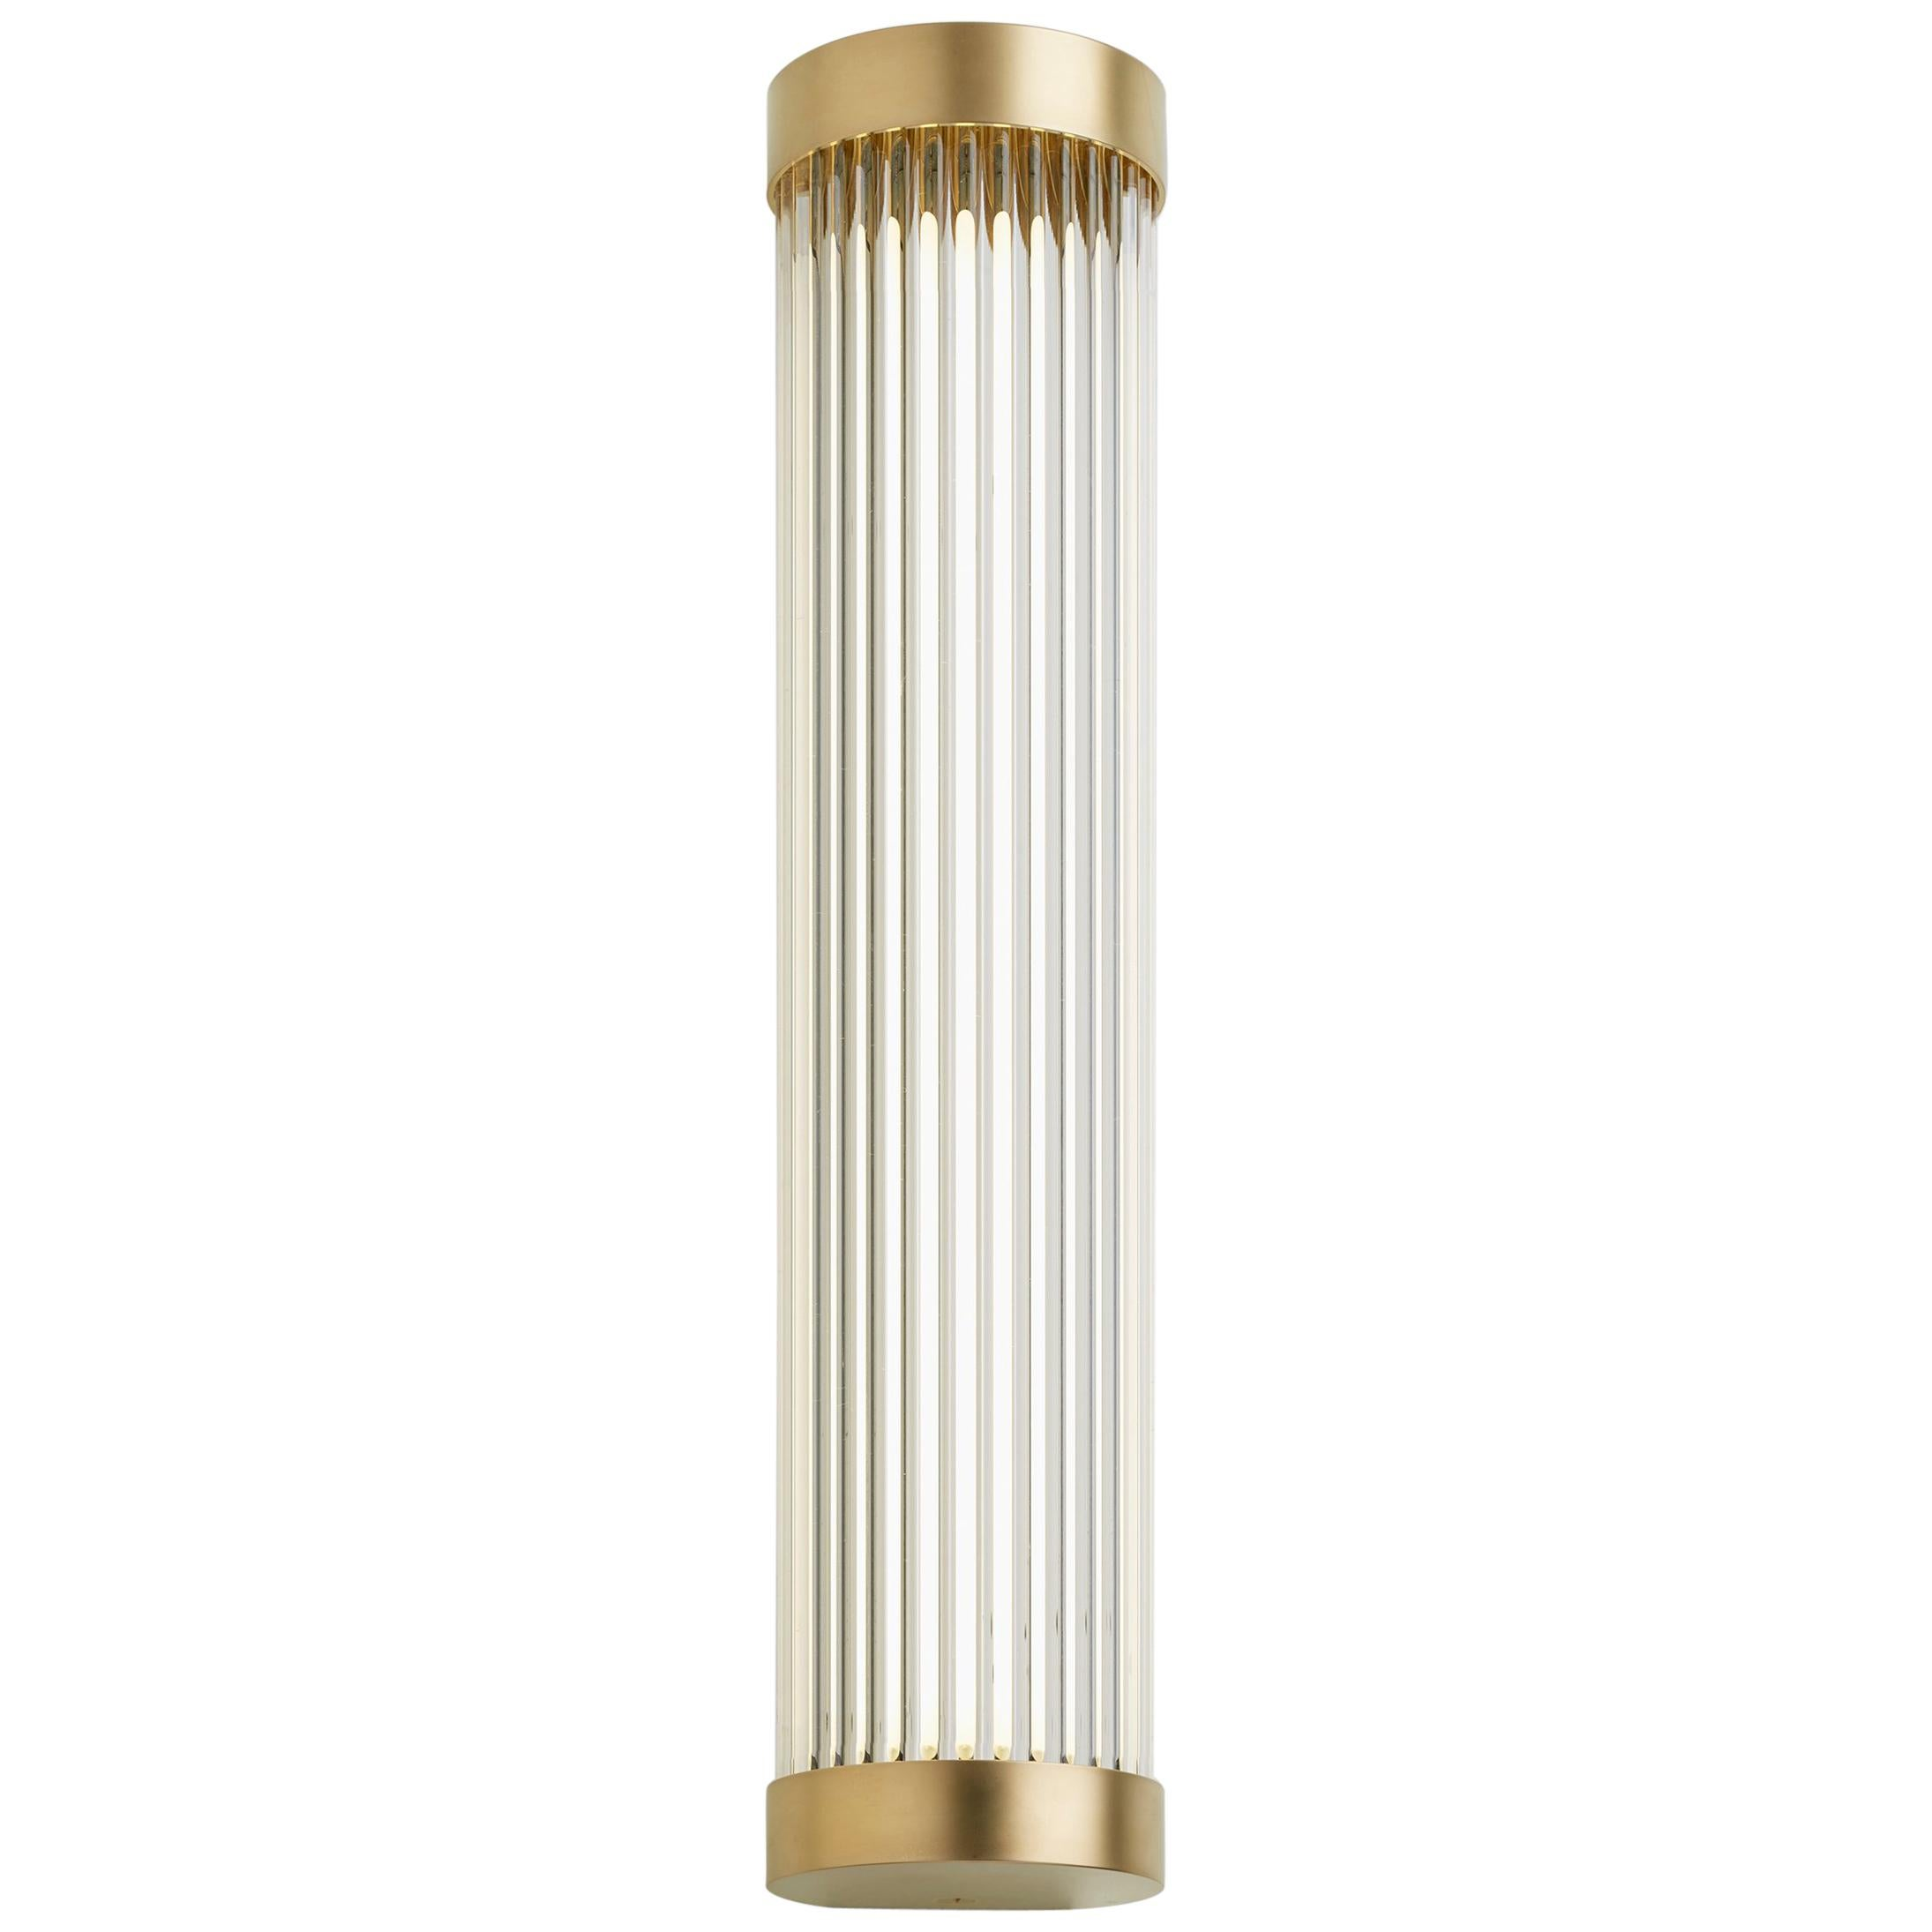 tekna mercer long wall light with gold plated brass finish